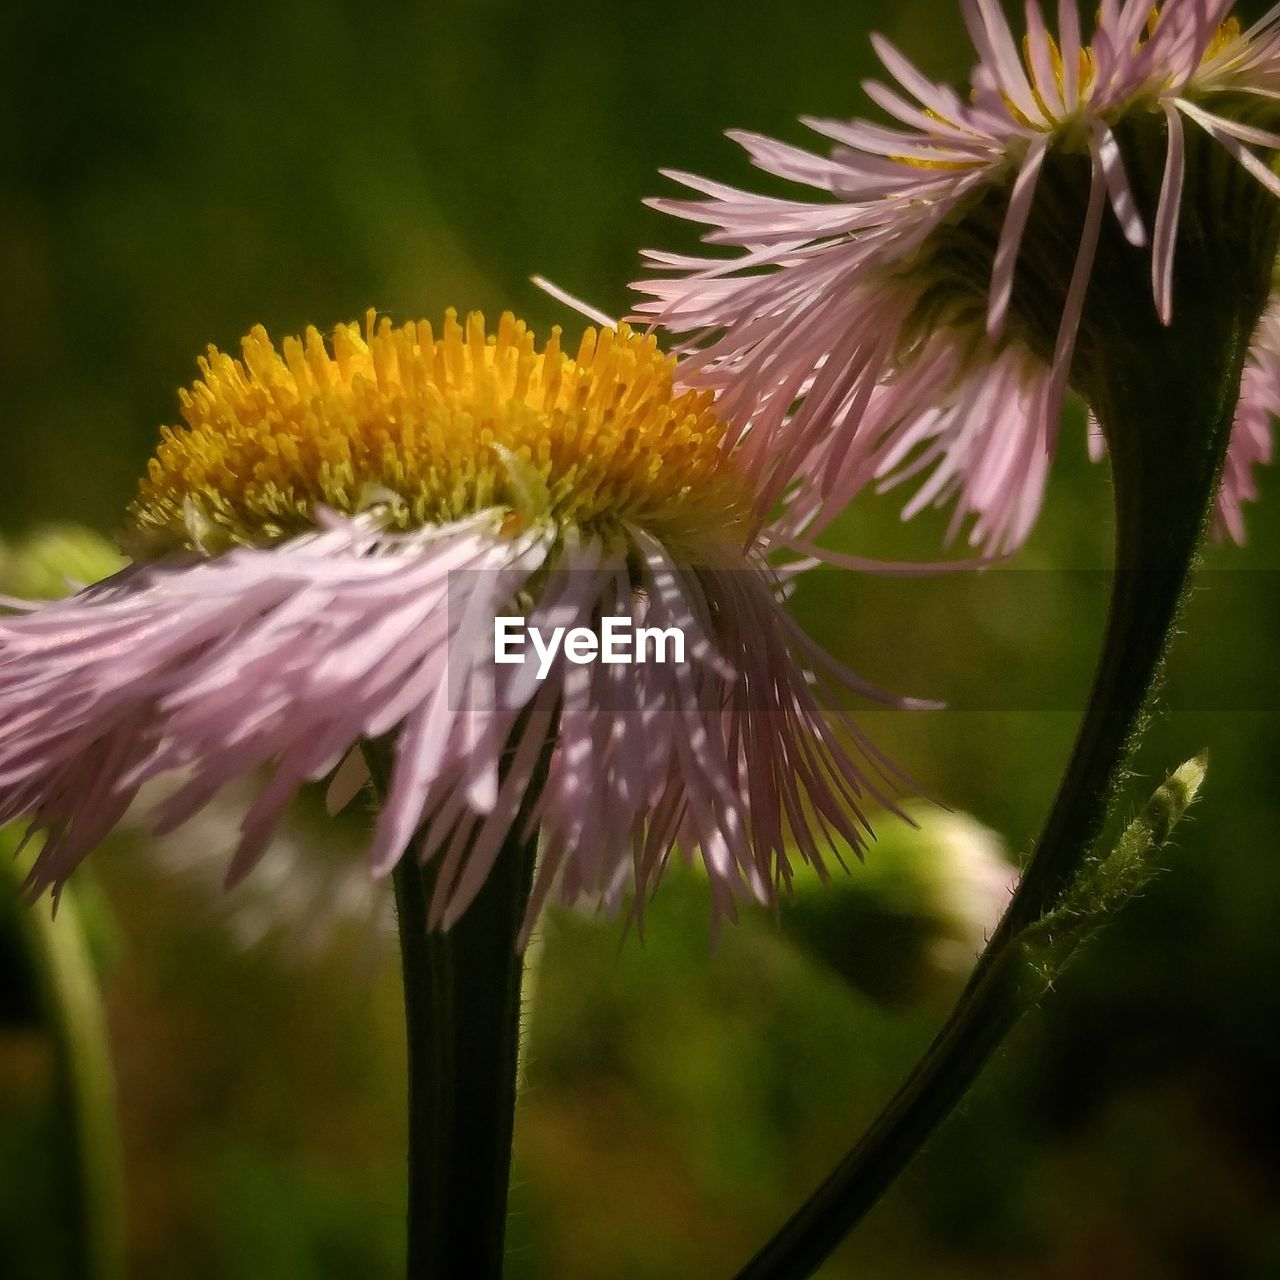 flower, fragility, growth, beauty in nature, petal, nature, flower head, freshness, close-up, pollen, blooming, no people, plant, focus on foreground, day, outdoors, eastern purple coneflower